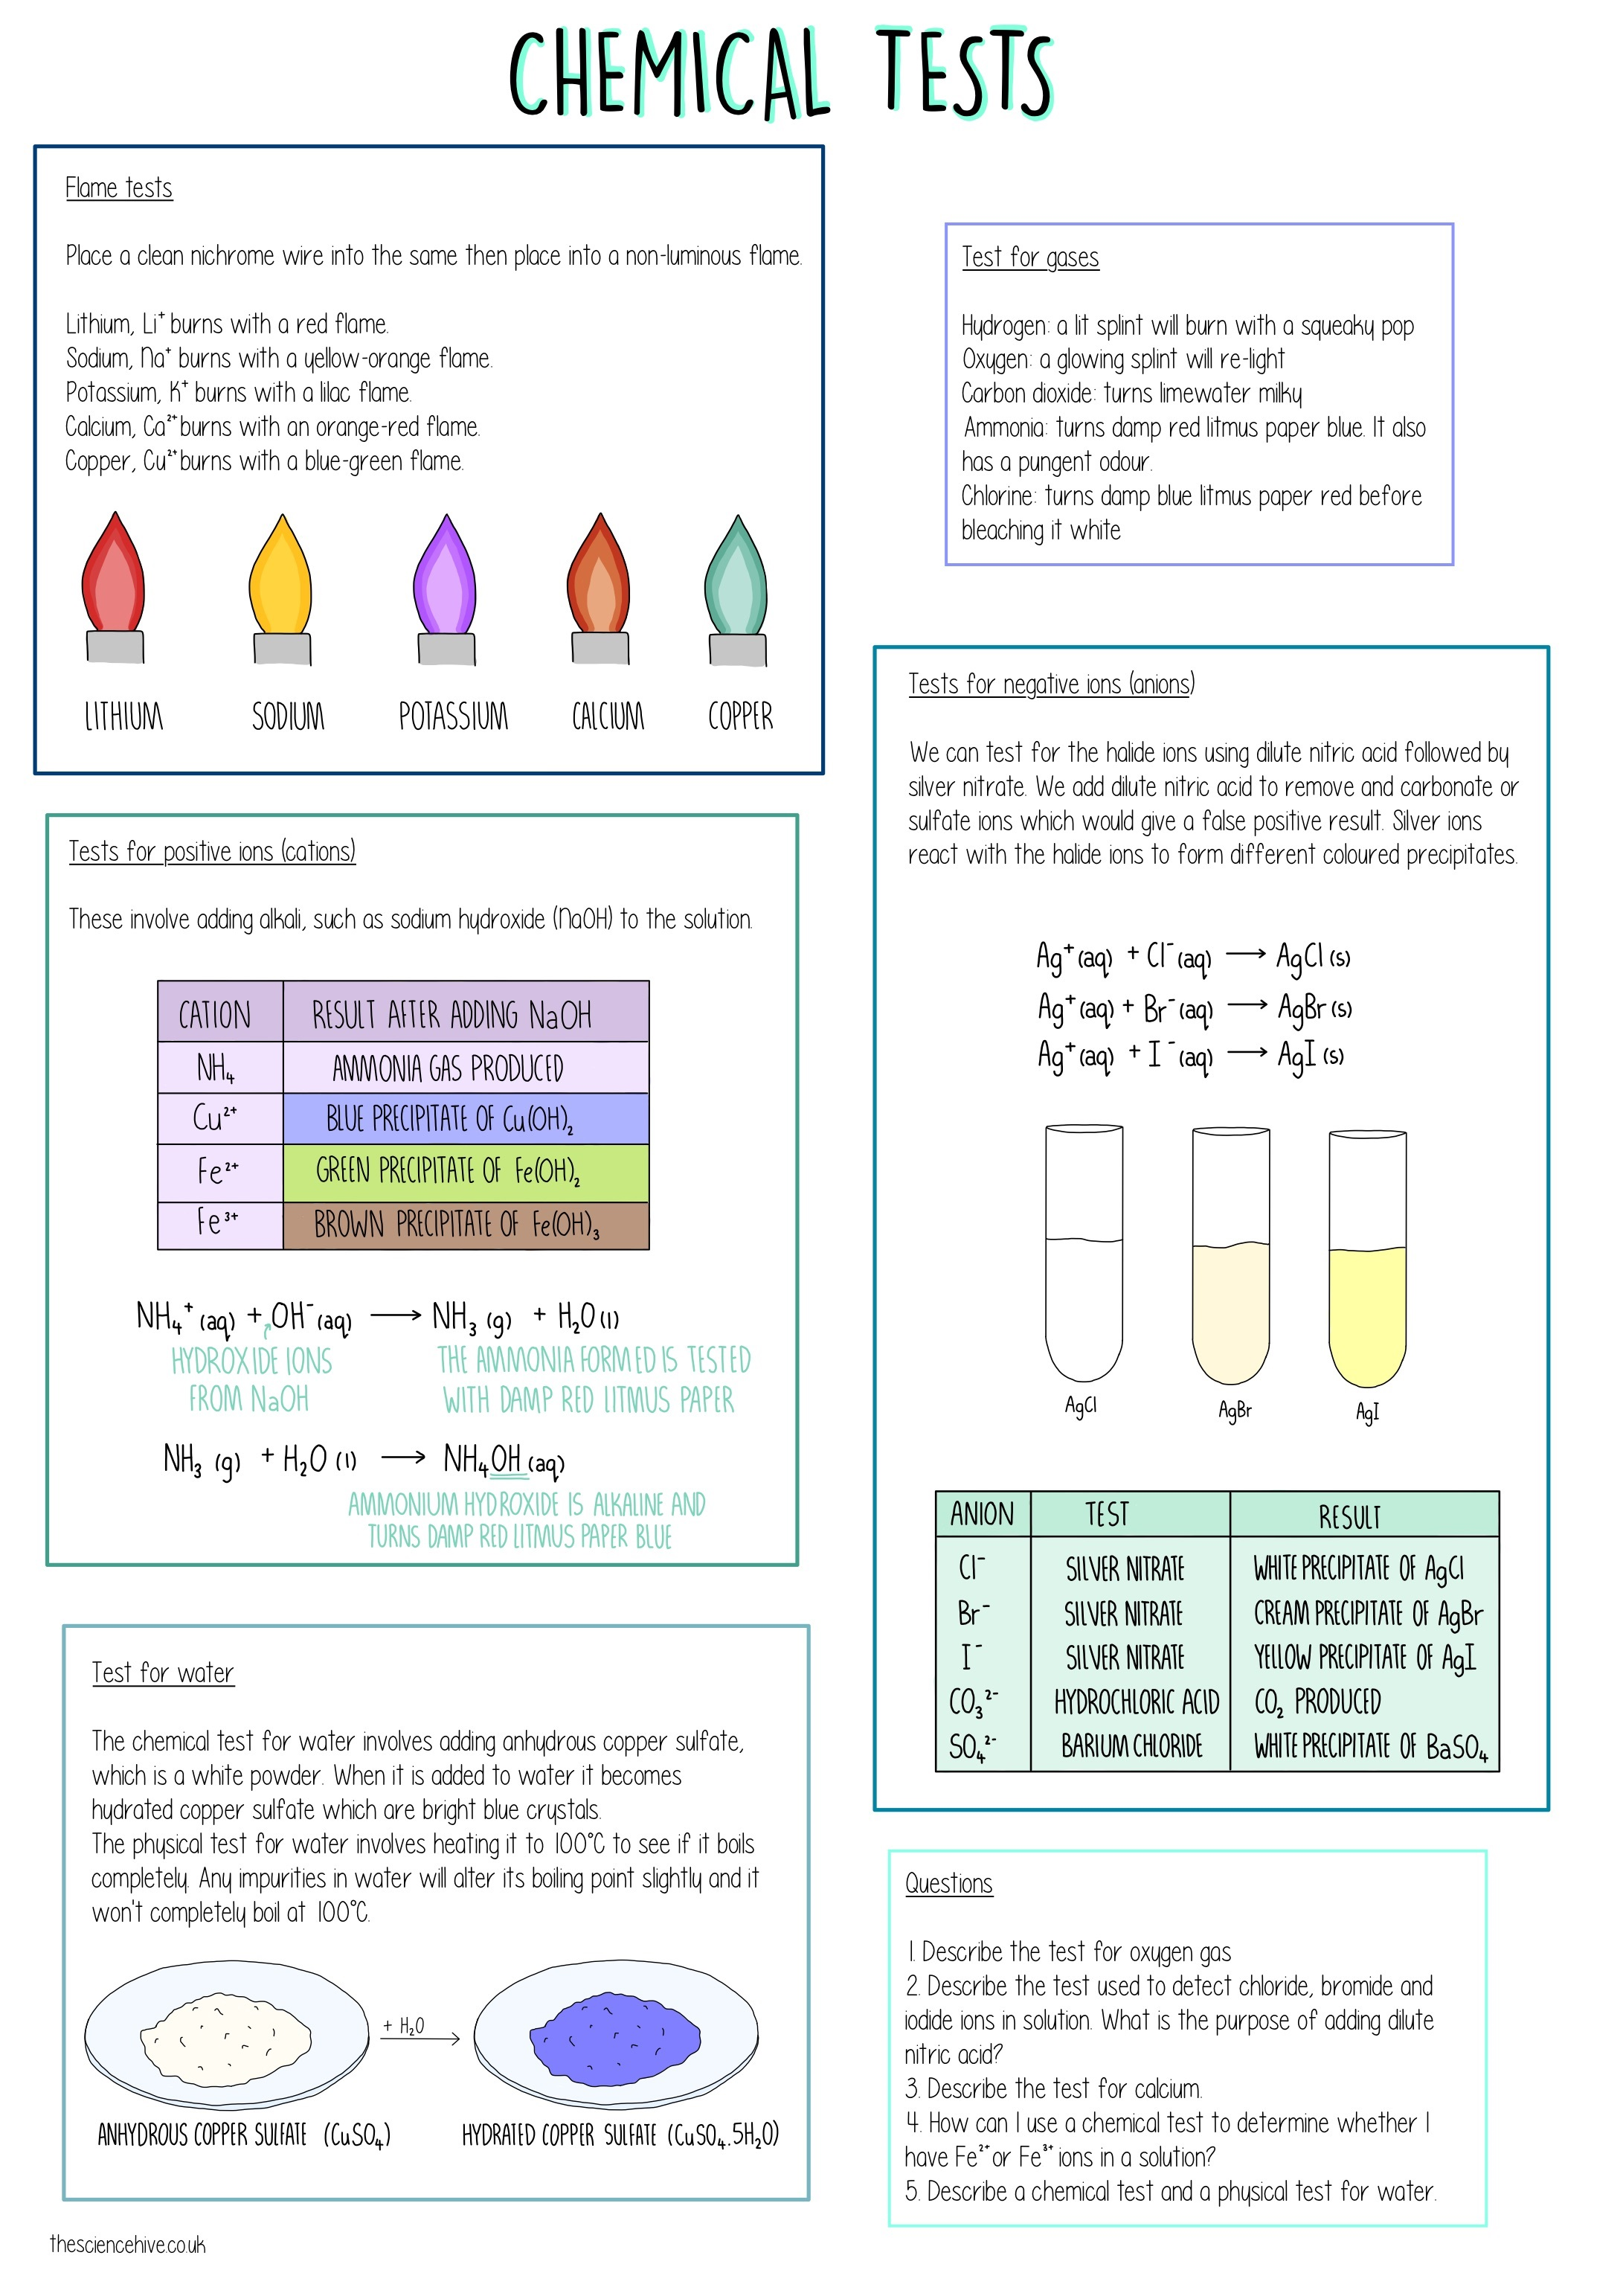 Chemical Tests Gcse